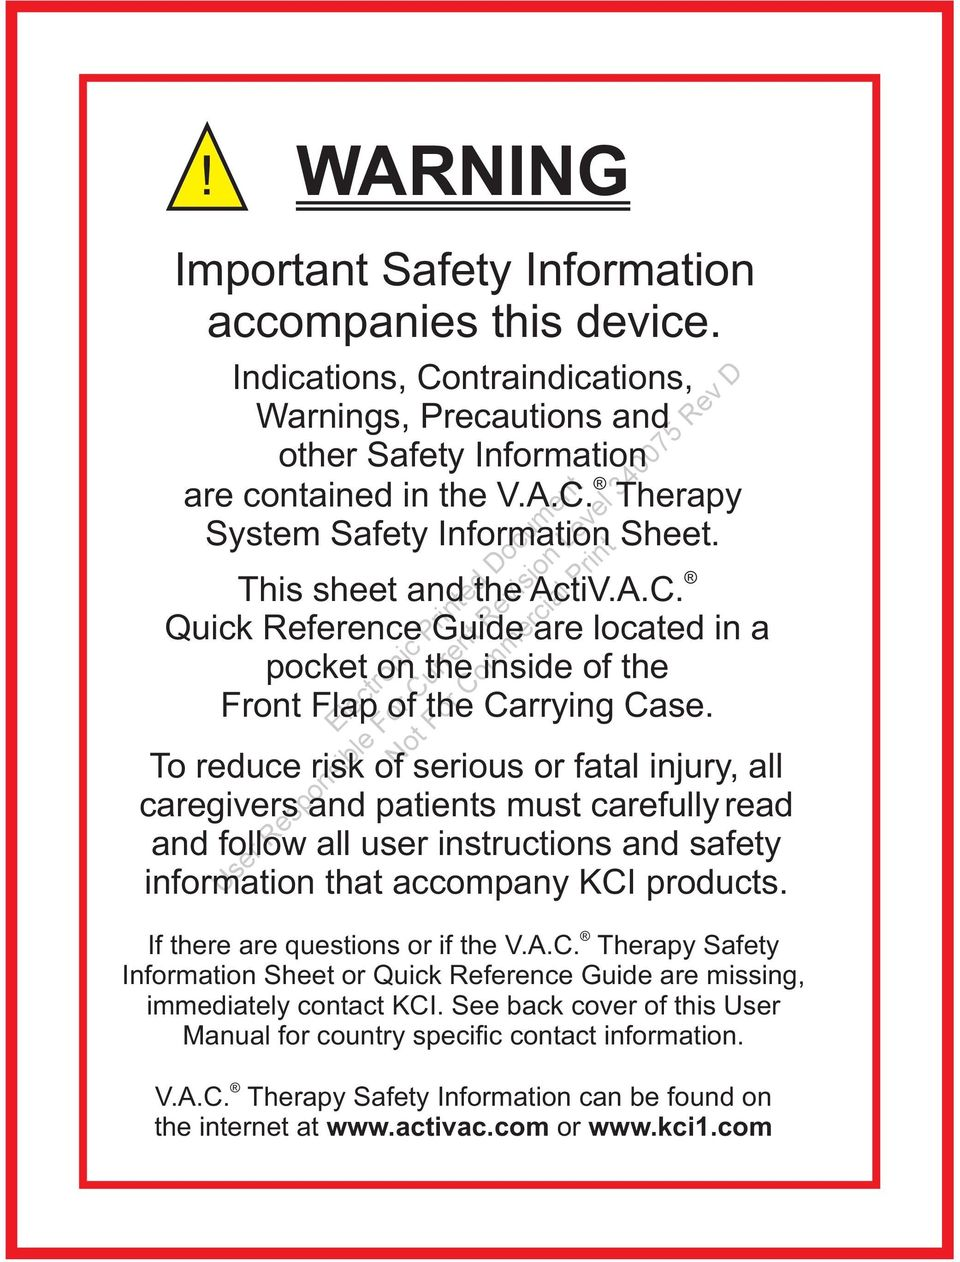 To reduce risk of serious or fatal injury, all caregivers and patients must carefully read and follow all user instructions and safety information that accompany KCI products.